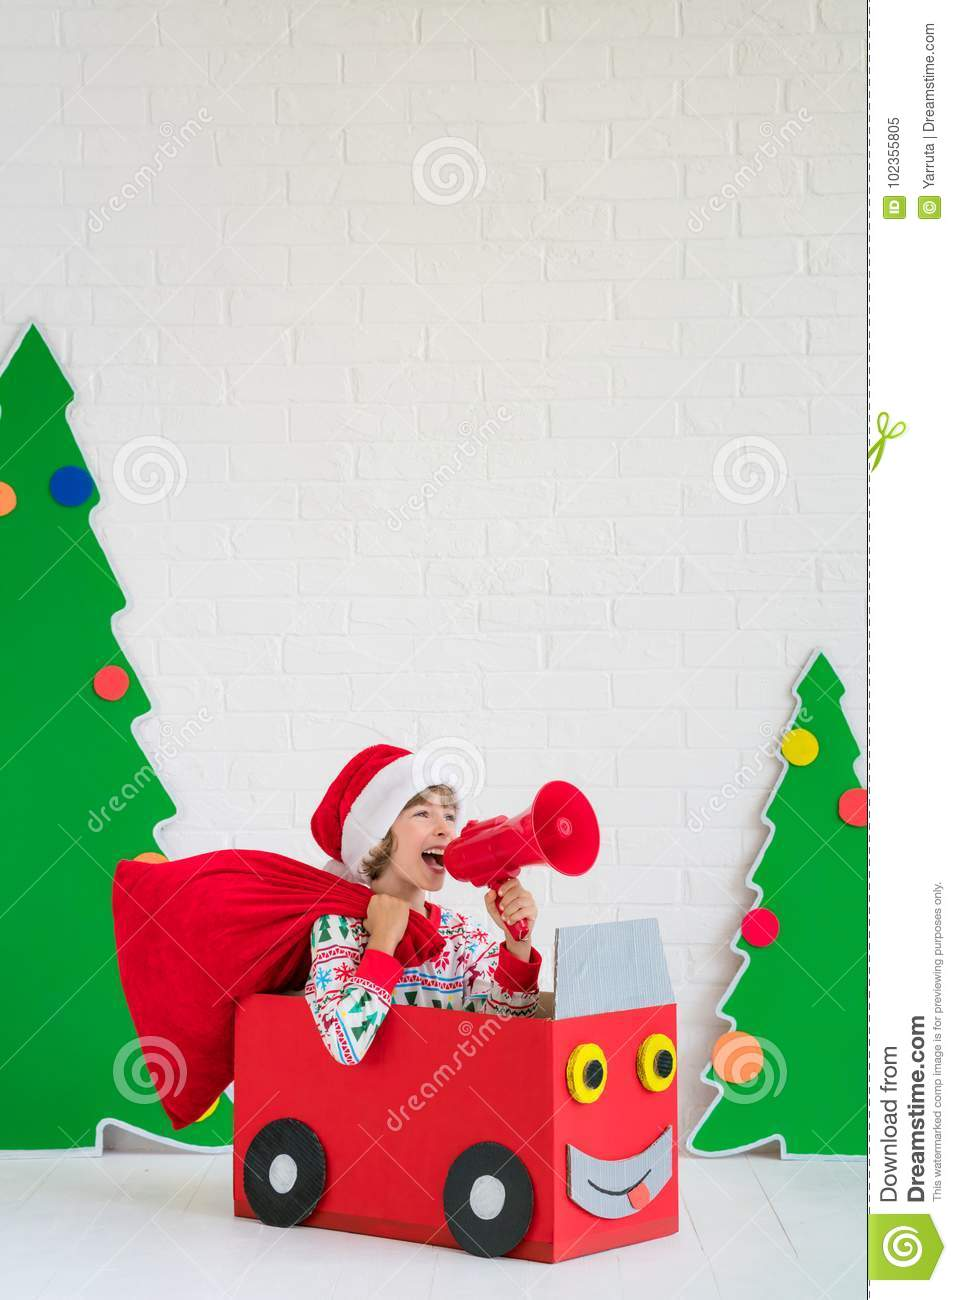 Happy Child On Christmas Eve Stock Image - Image of play, moving ...